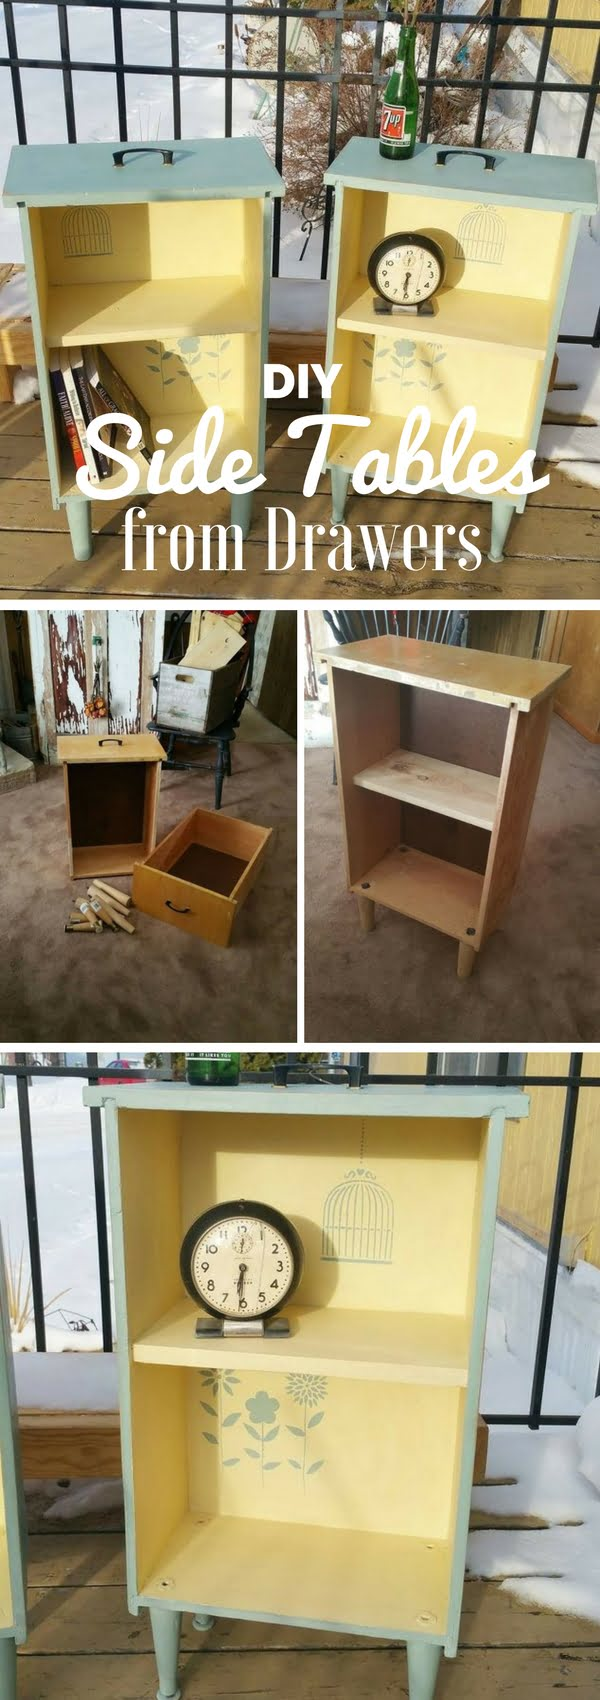 Check out how to make easy shabby chic DIY Side Tables from Drawers